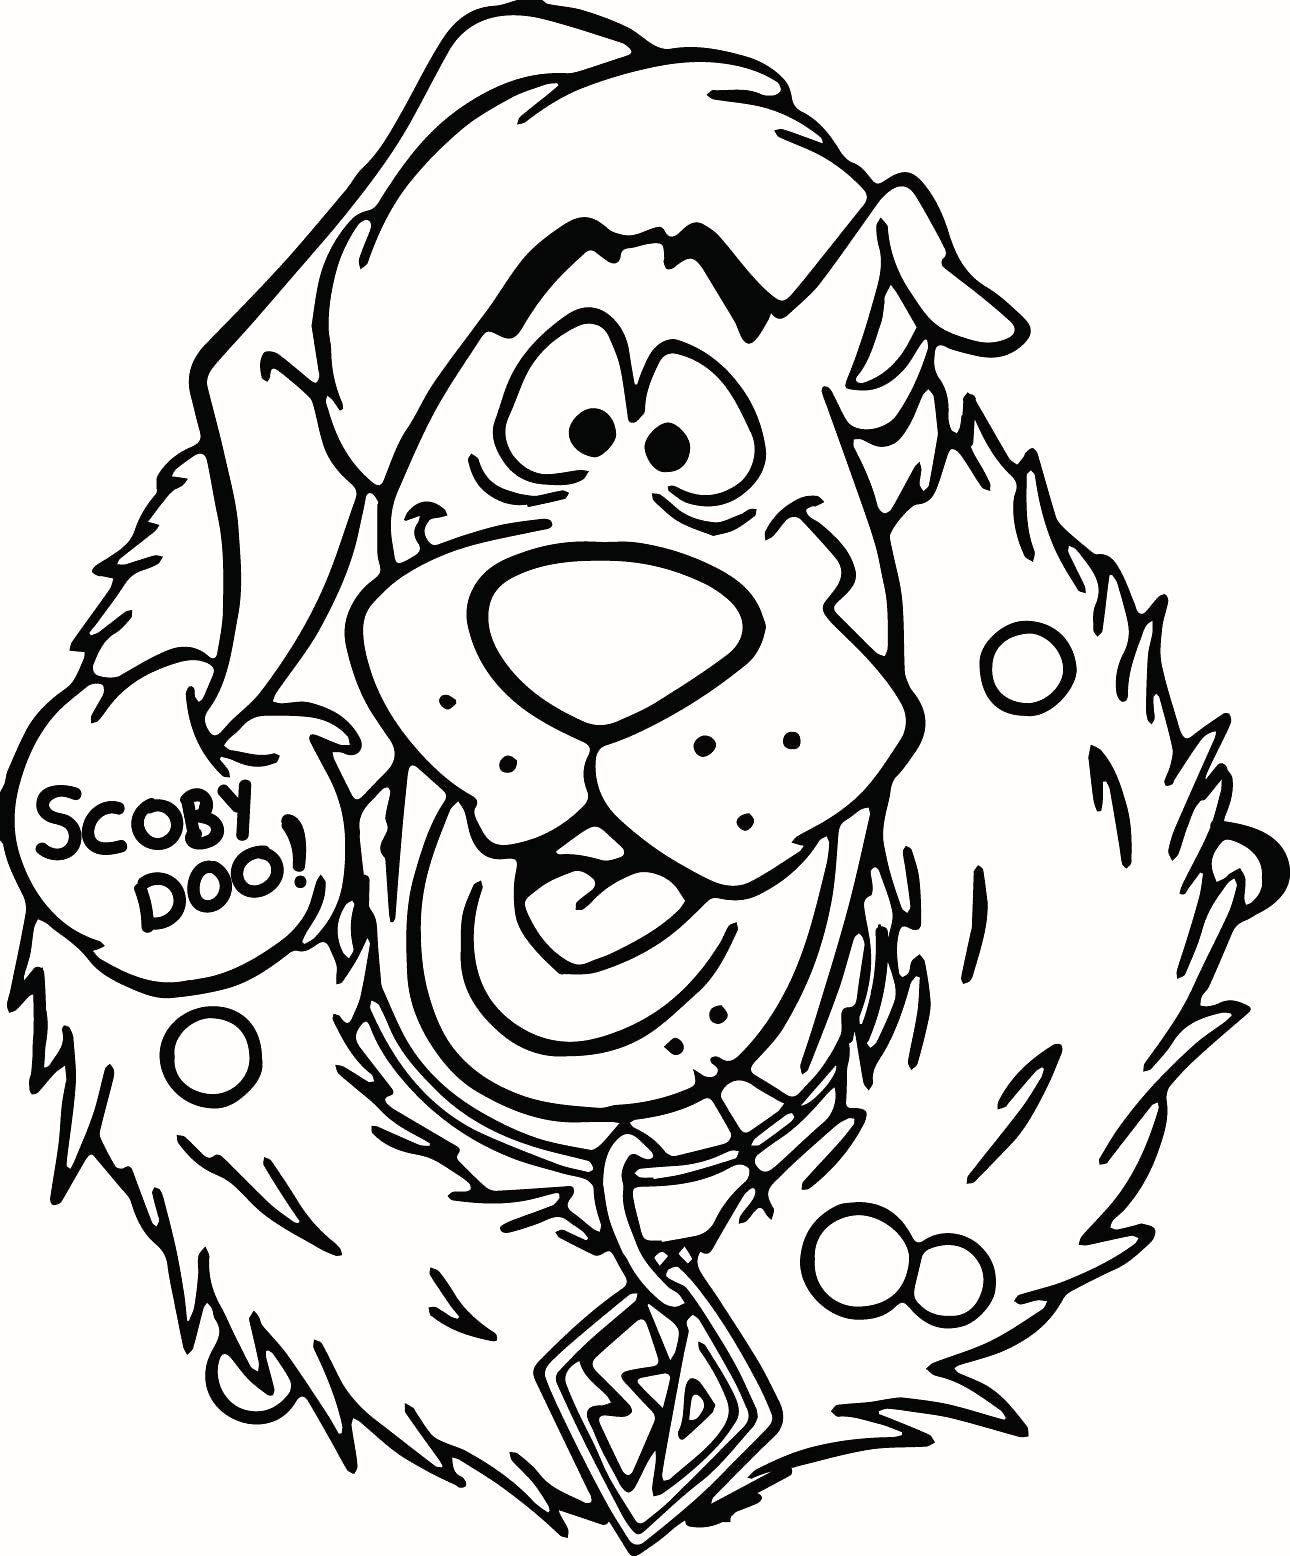 Scooby Doo Christmas Coloring Pages Printable With Lovely CrosbyAndCosg